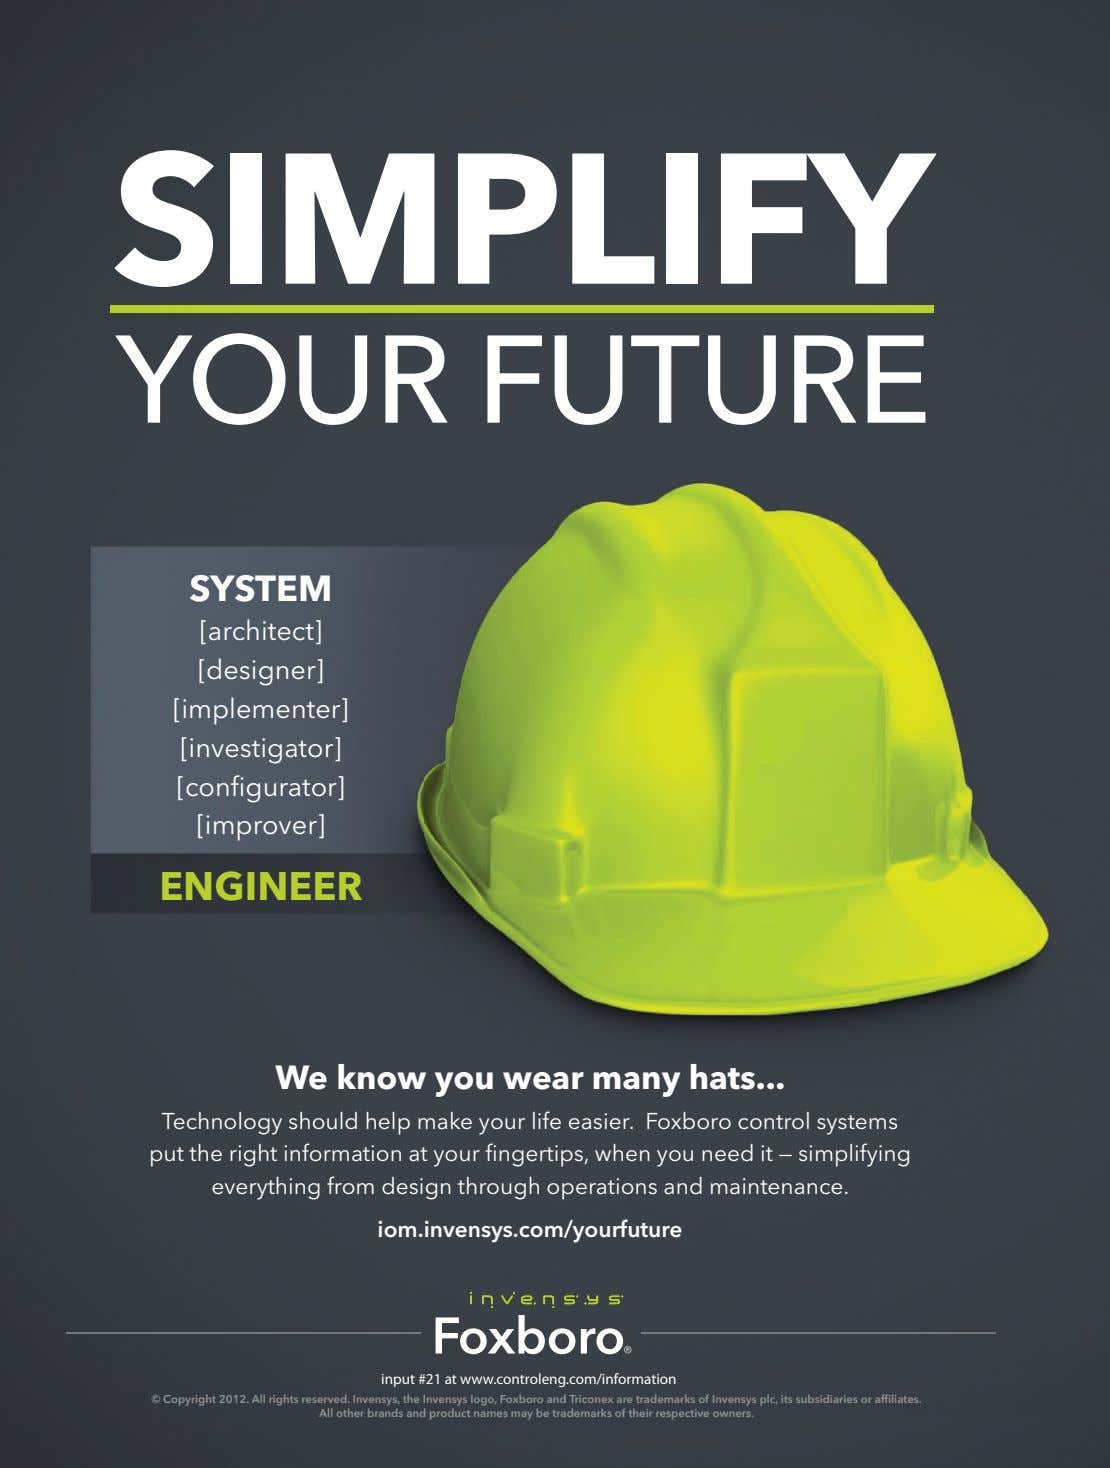 SIMPLIFY YOUR FUTURE SYSTEM [architect] [designer] [implementer] [investigator] [configurator] [improver]